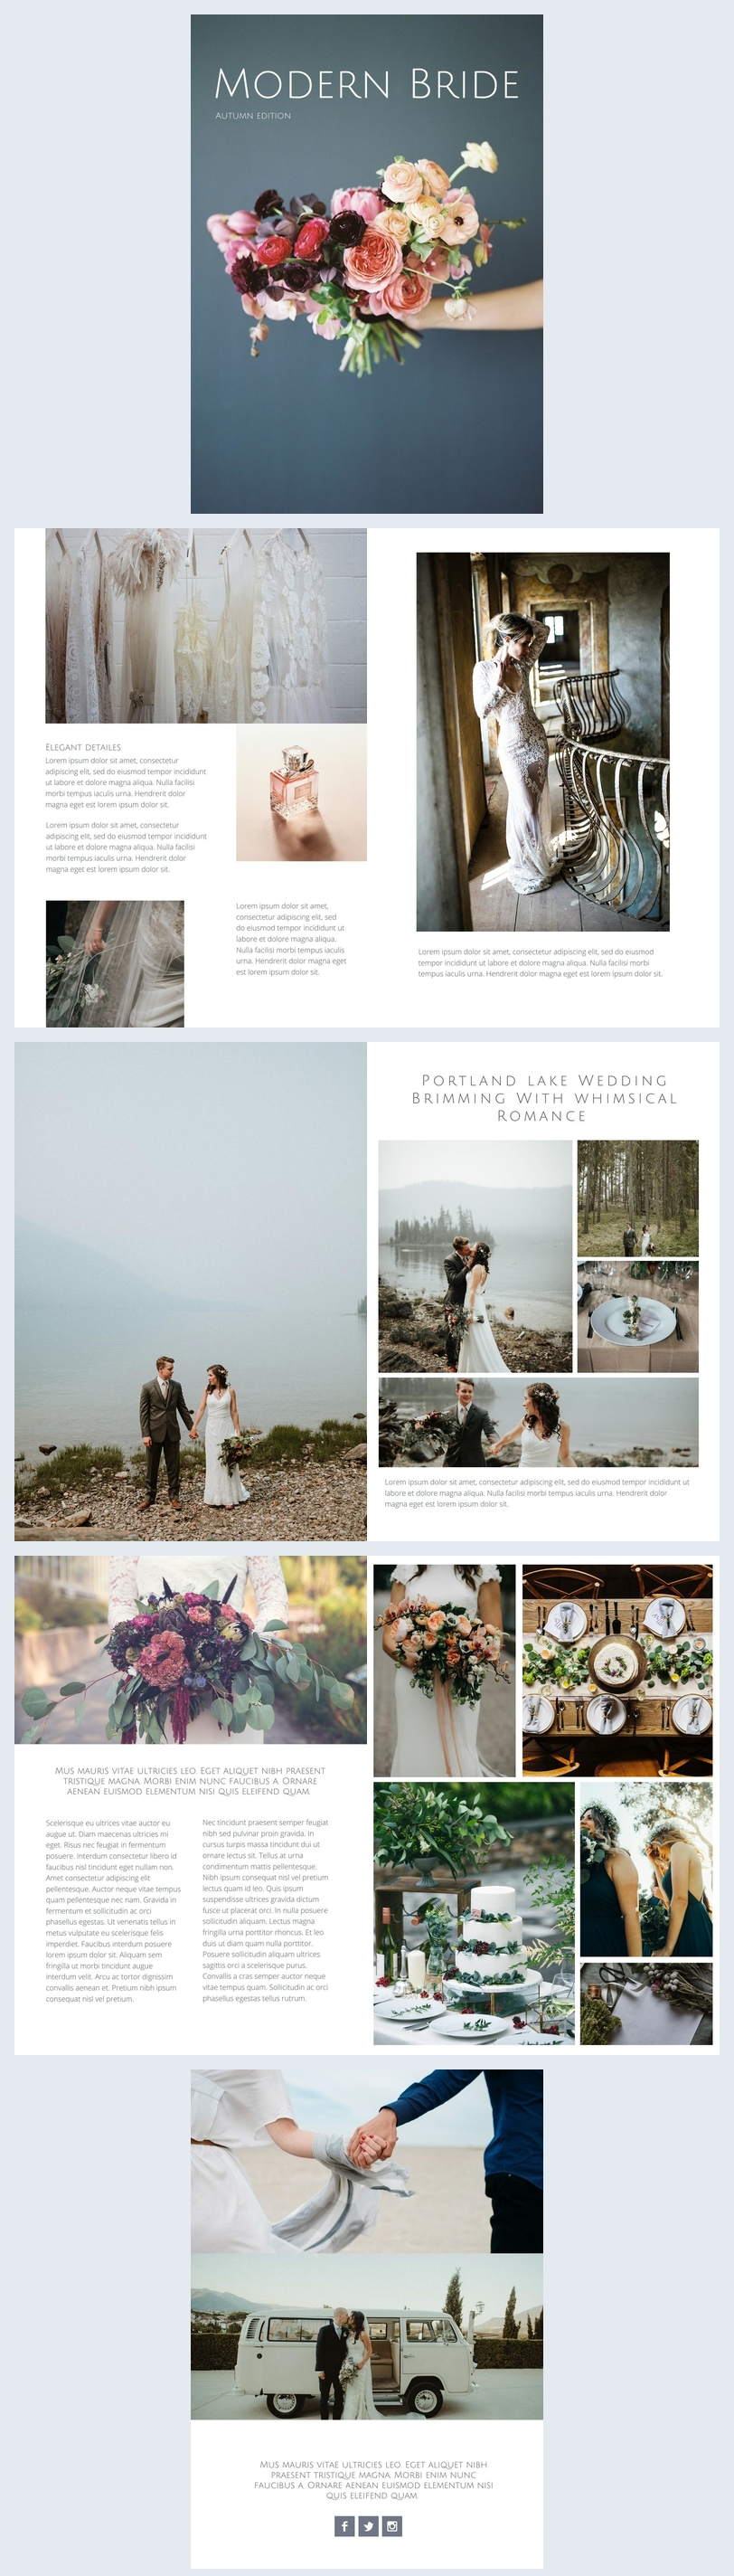 Wedding Photo Album Design